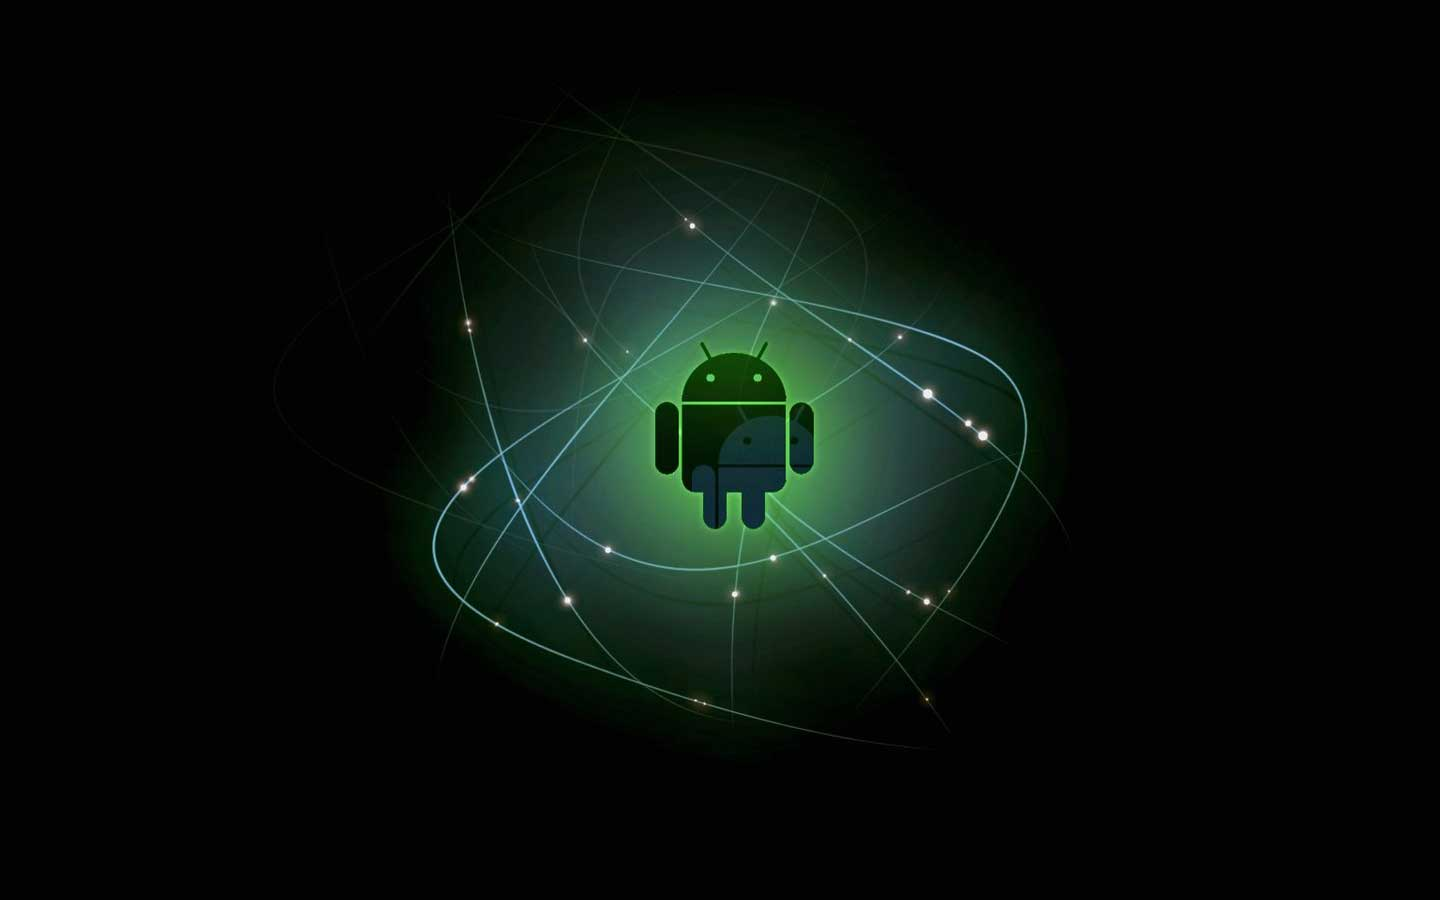 Android full colour dark hd wallpaper wallpaper background hd android backgrounds wallpaper cave image source from this voltagebd Gallery